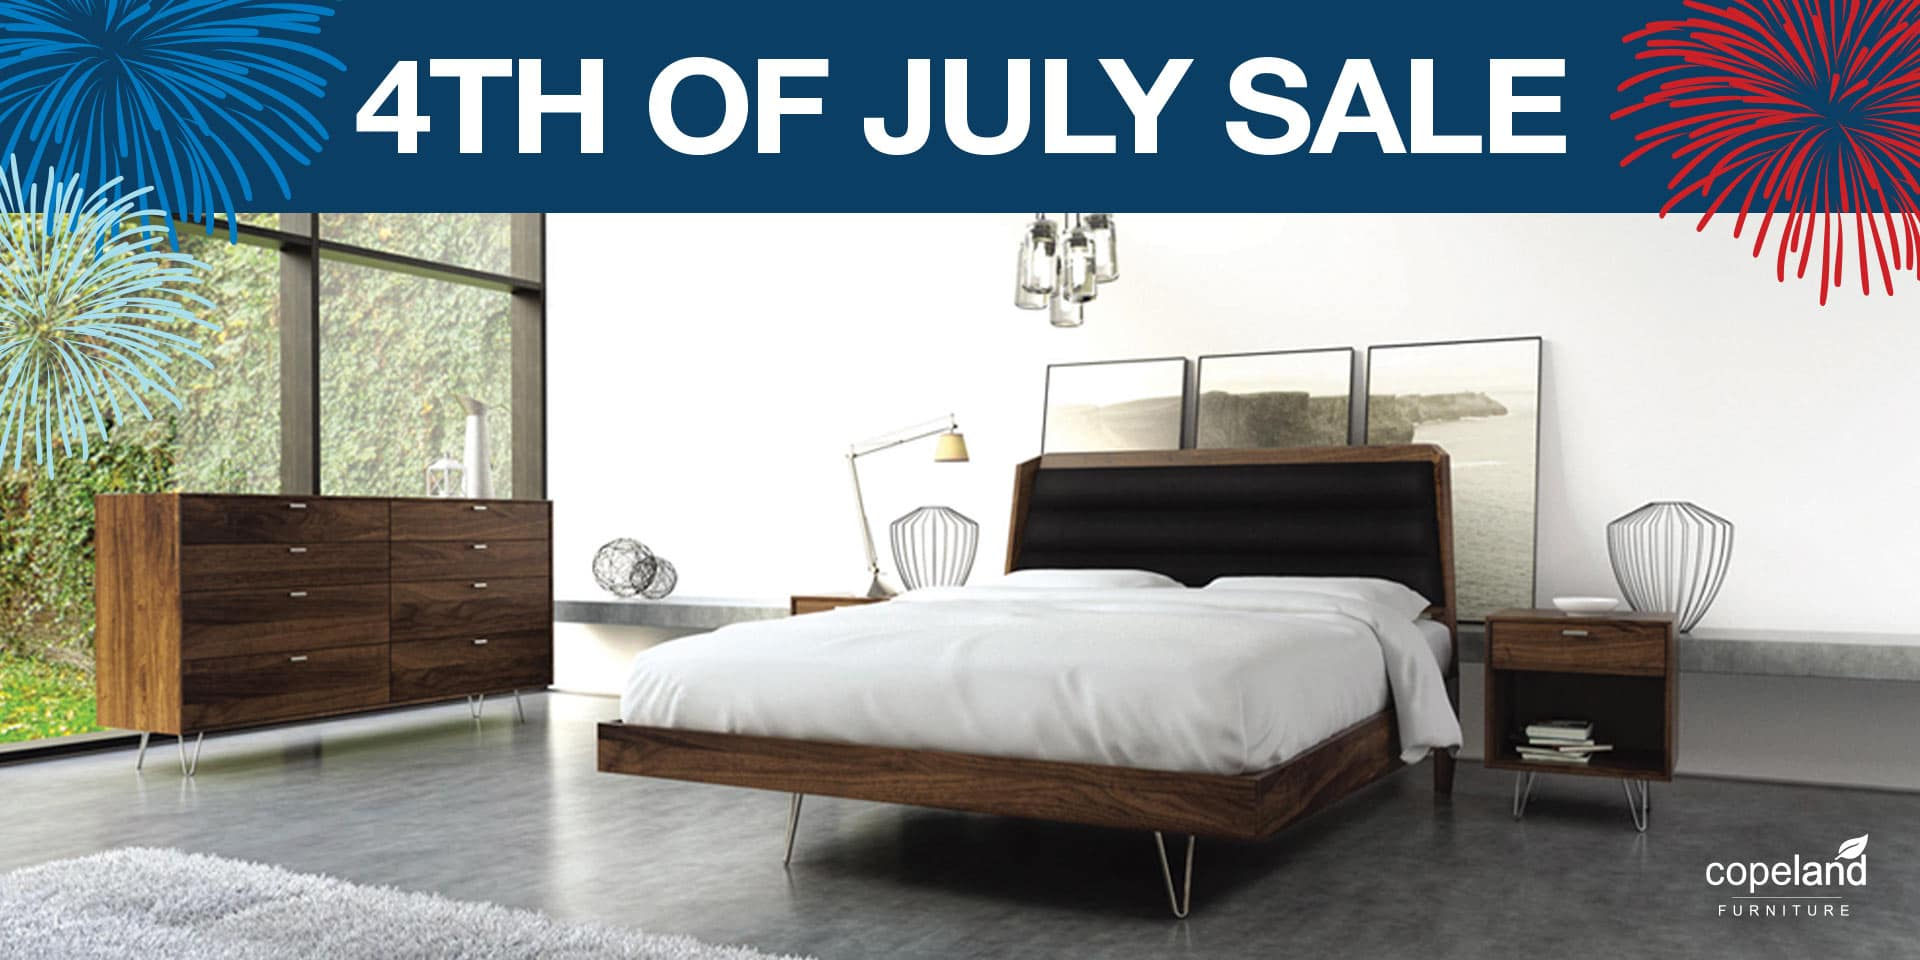 Copeland 4th of July Sale